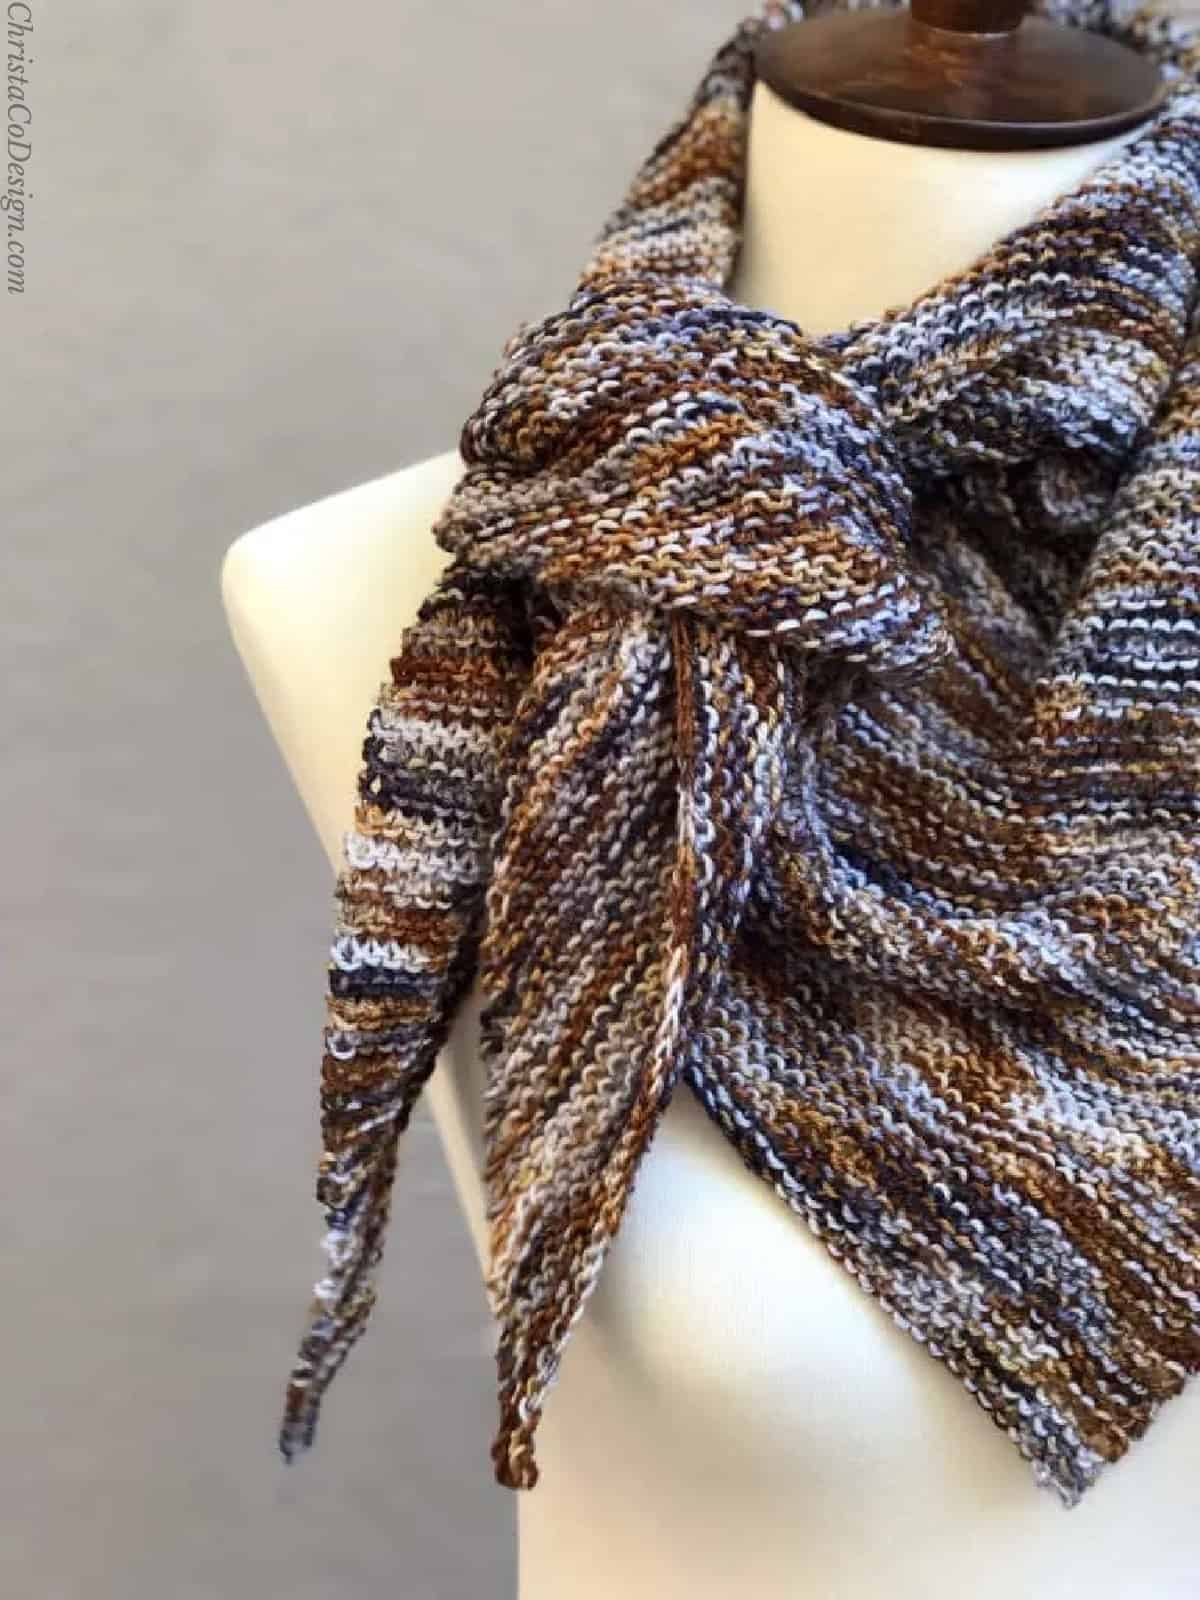 Knit triangle scarf tied loosely on side like neckerchief.